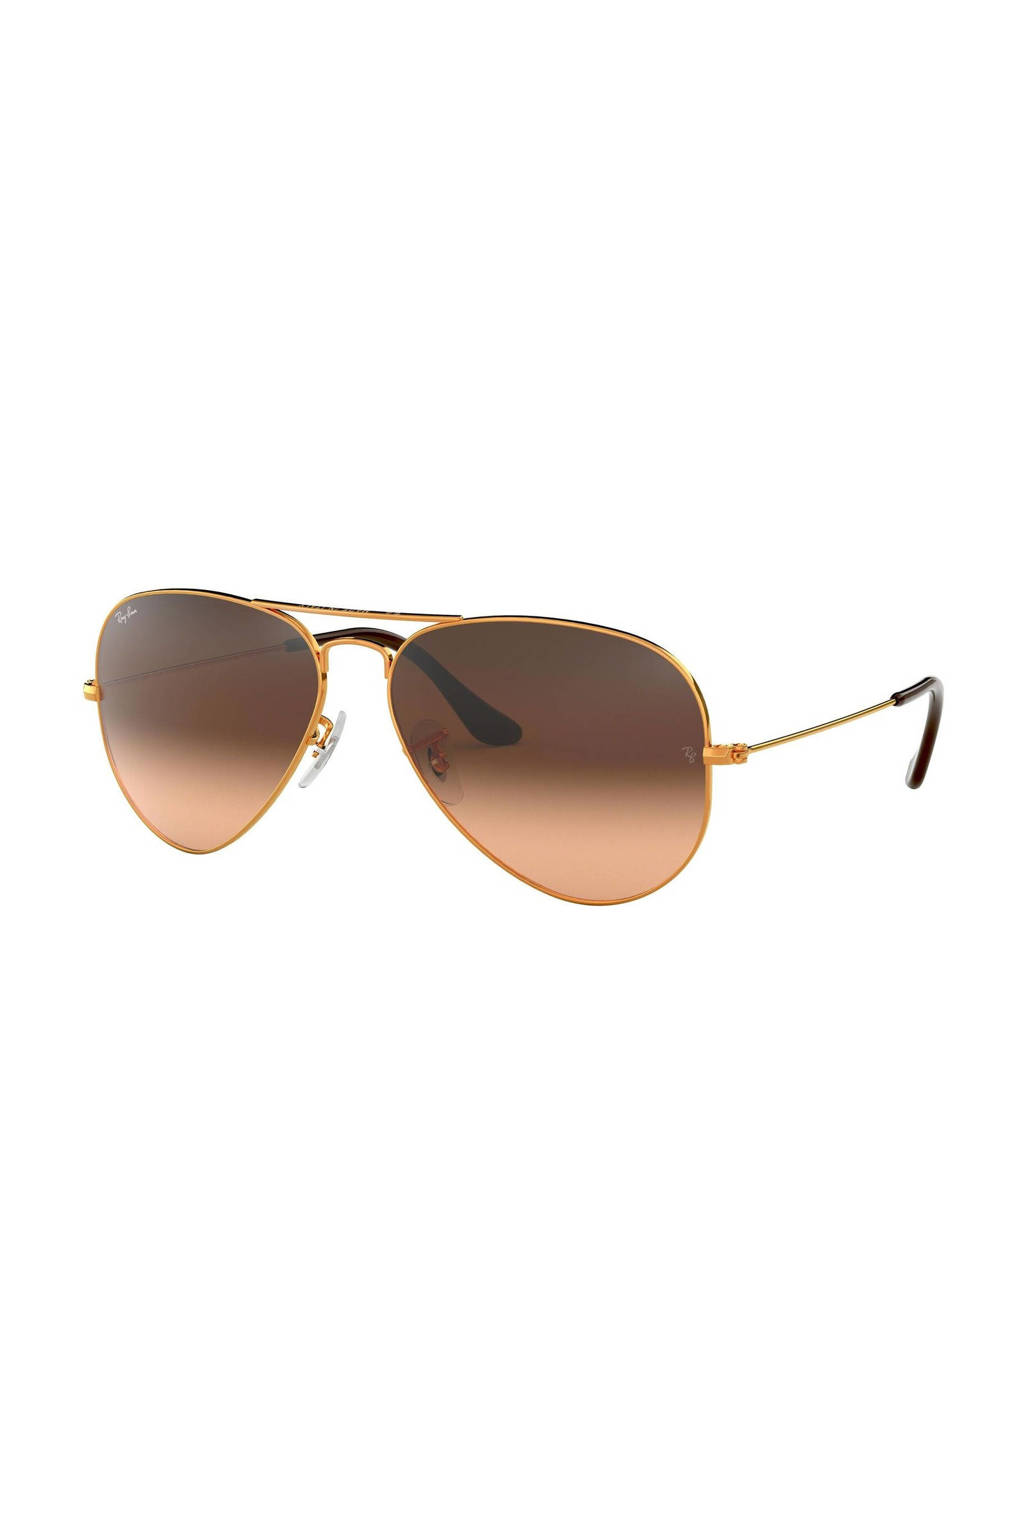 Ray-Ban zonnebril 0RB3025, Roze/bruin